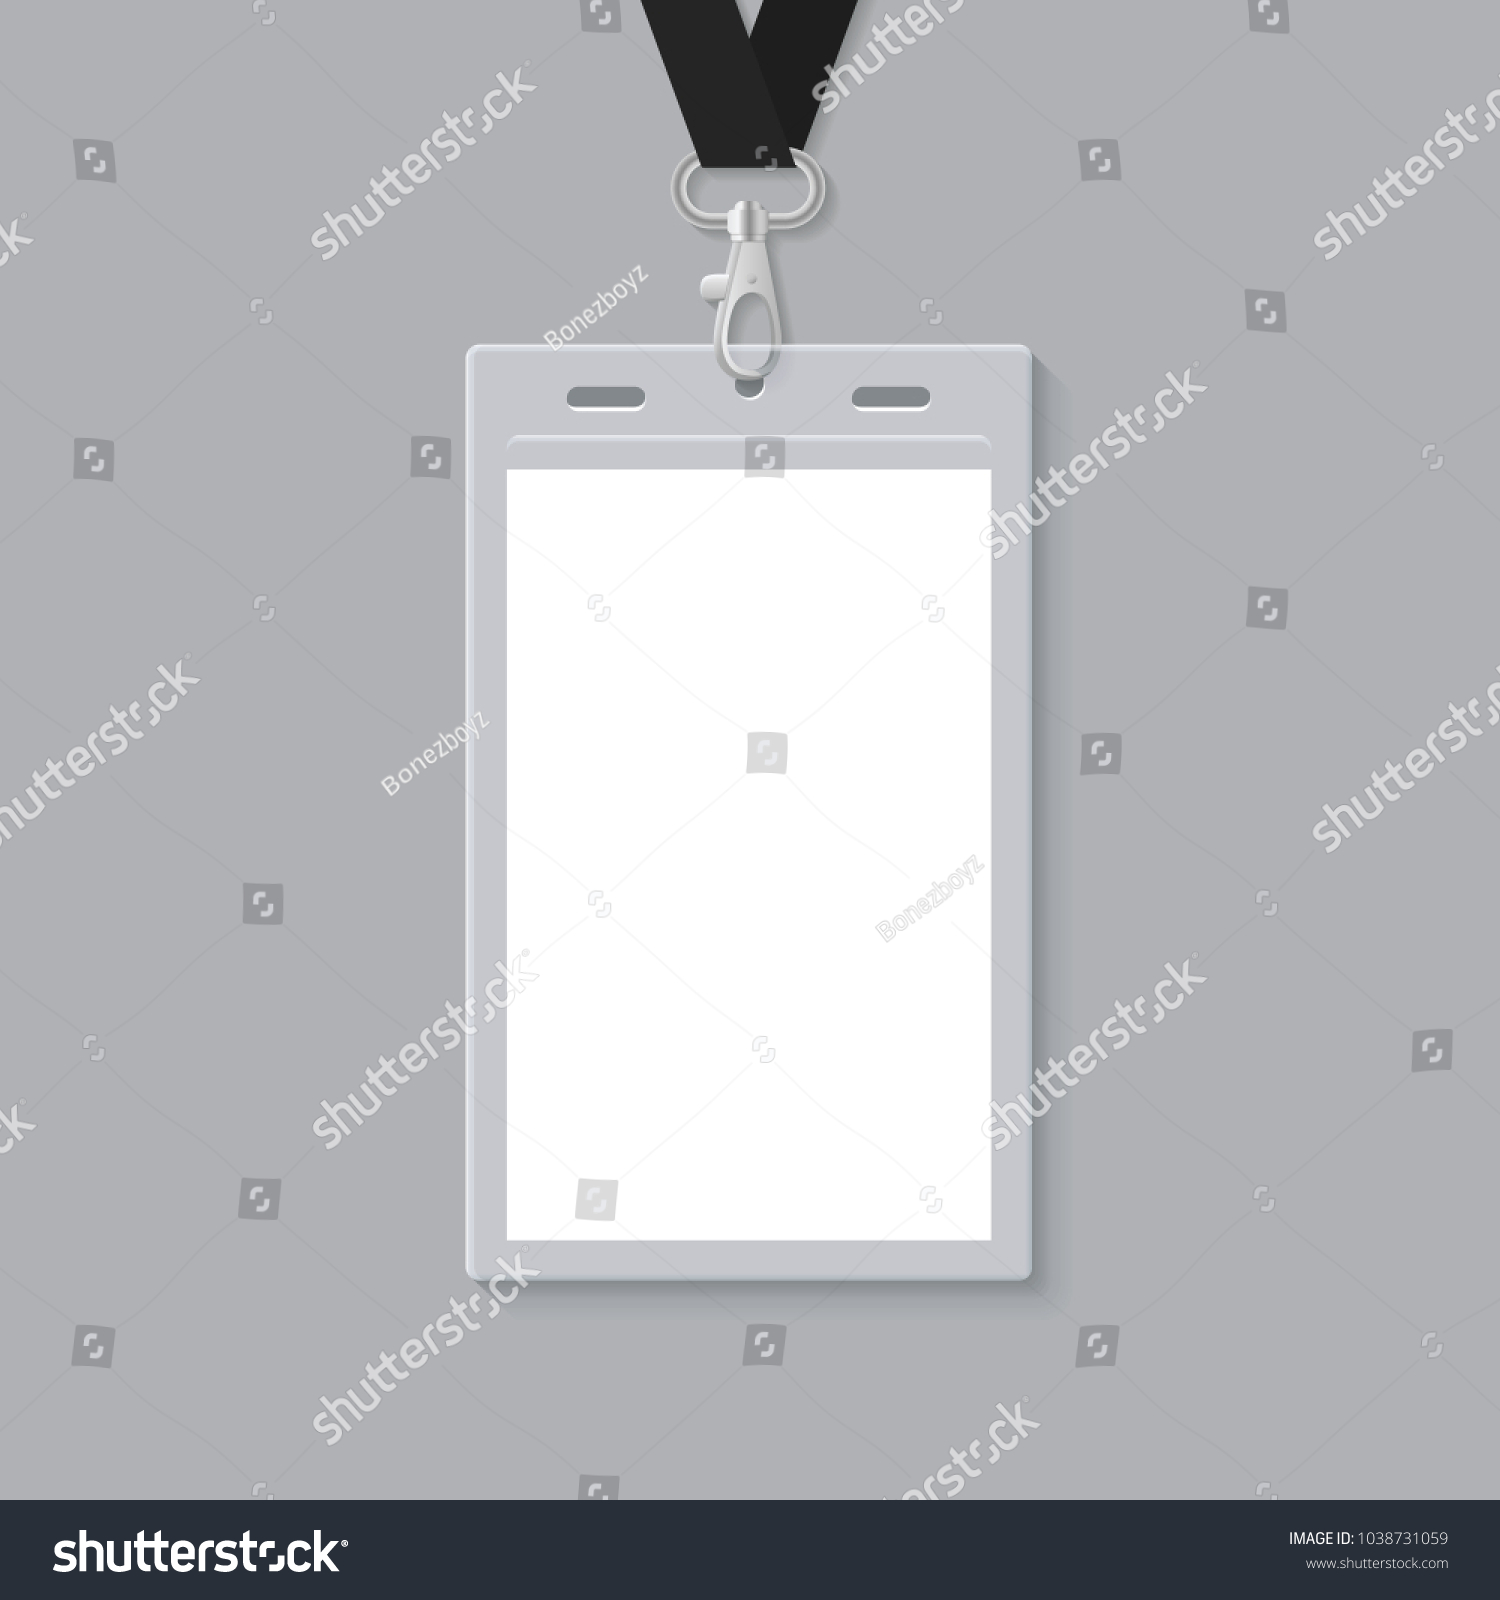 Blank ID Card Template Stock Vector (Royalty Free) 1038731059 ...